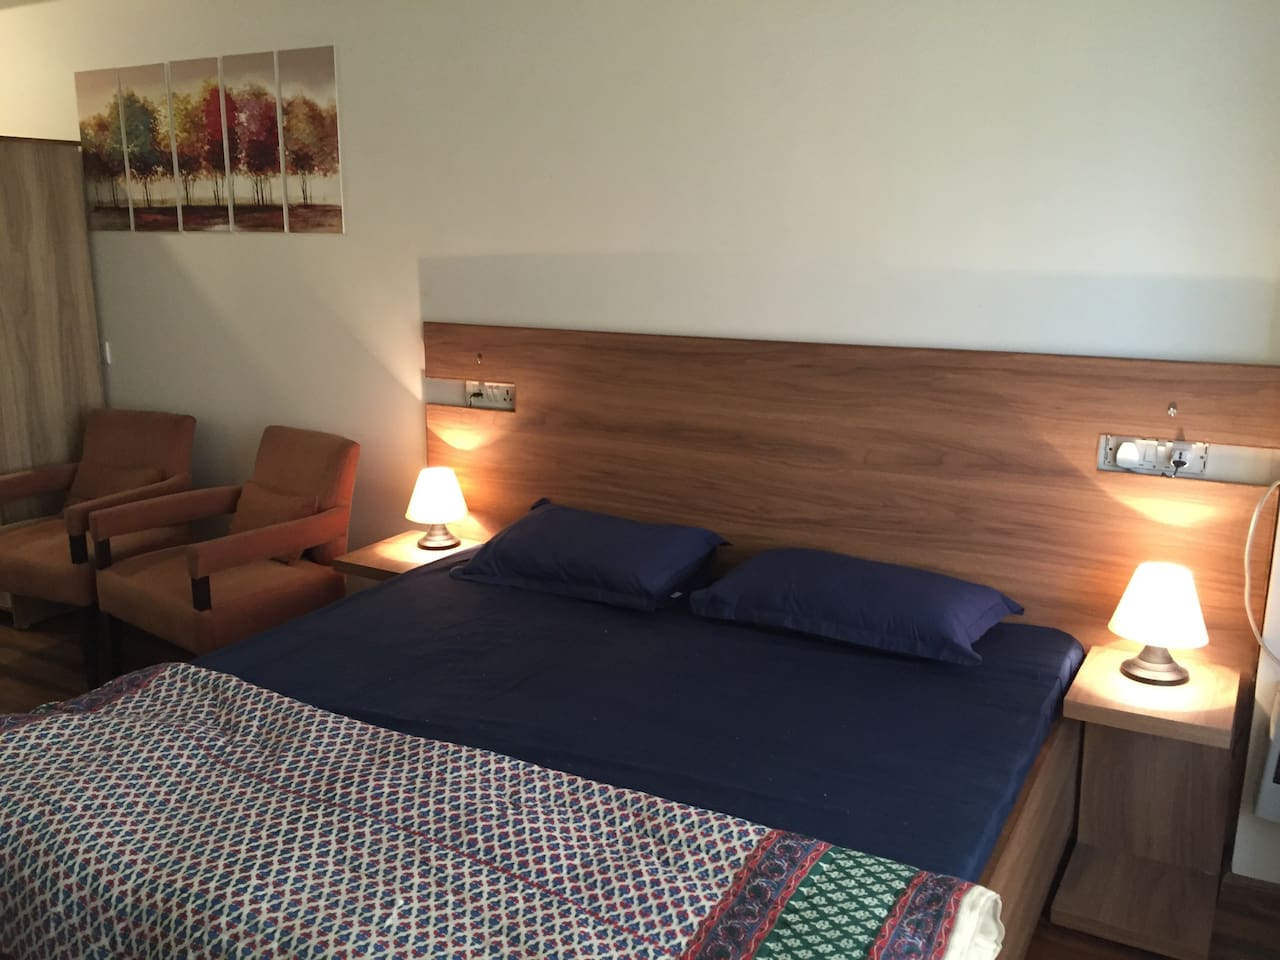 Comfortable king sized bed. Splittable to make 2 single beds. Fresh linen on each arrival.